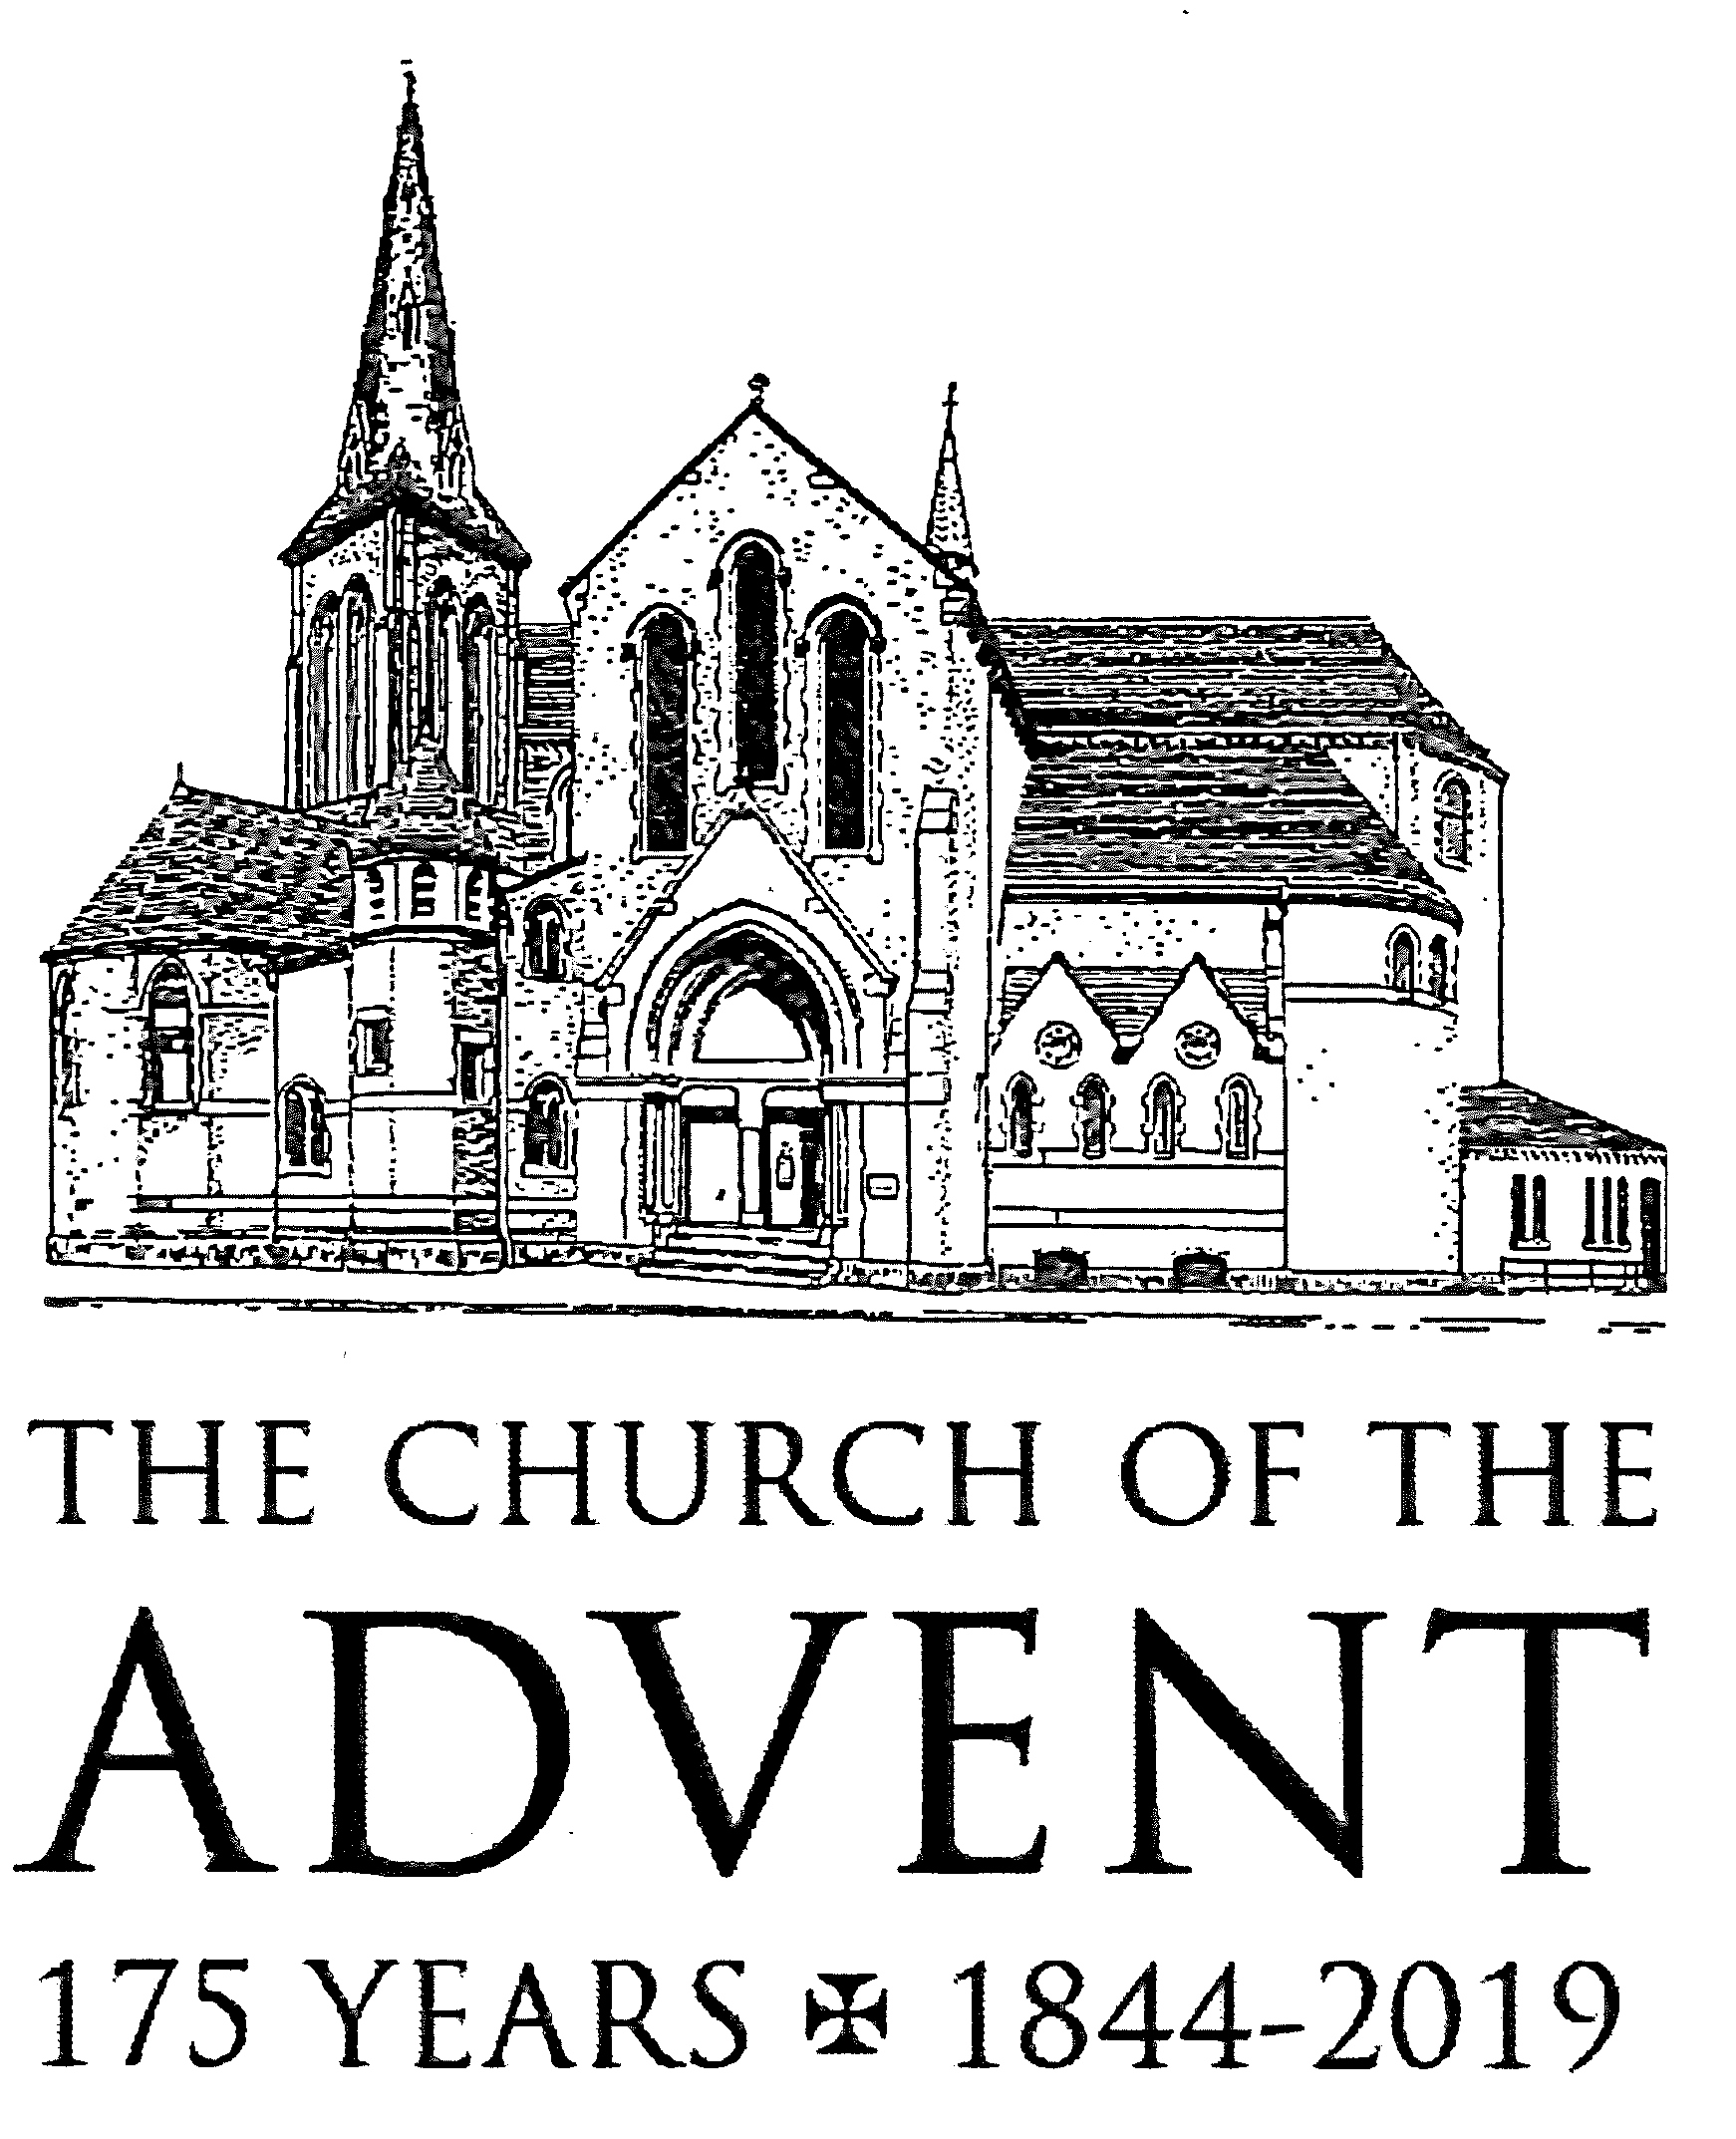 This Week at the Advent, October 20-26, 2019 - The Church of ...